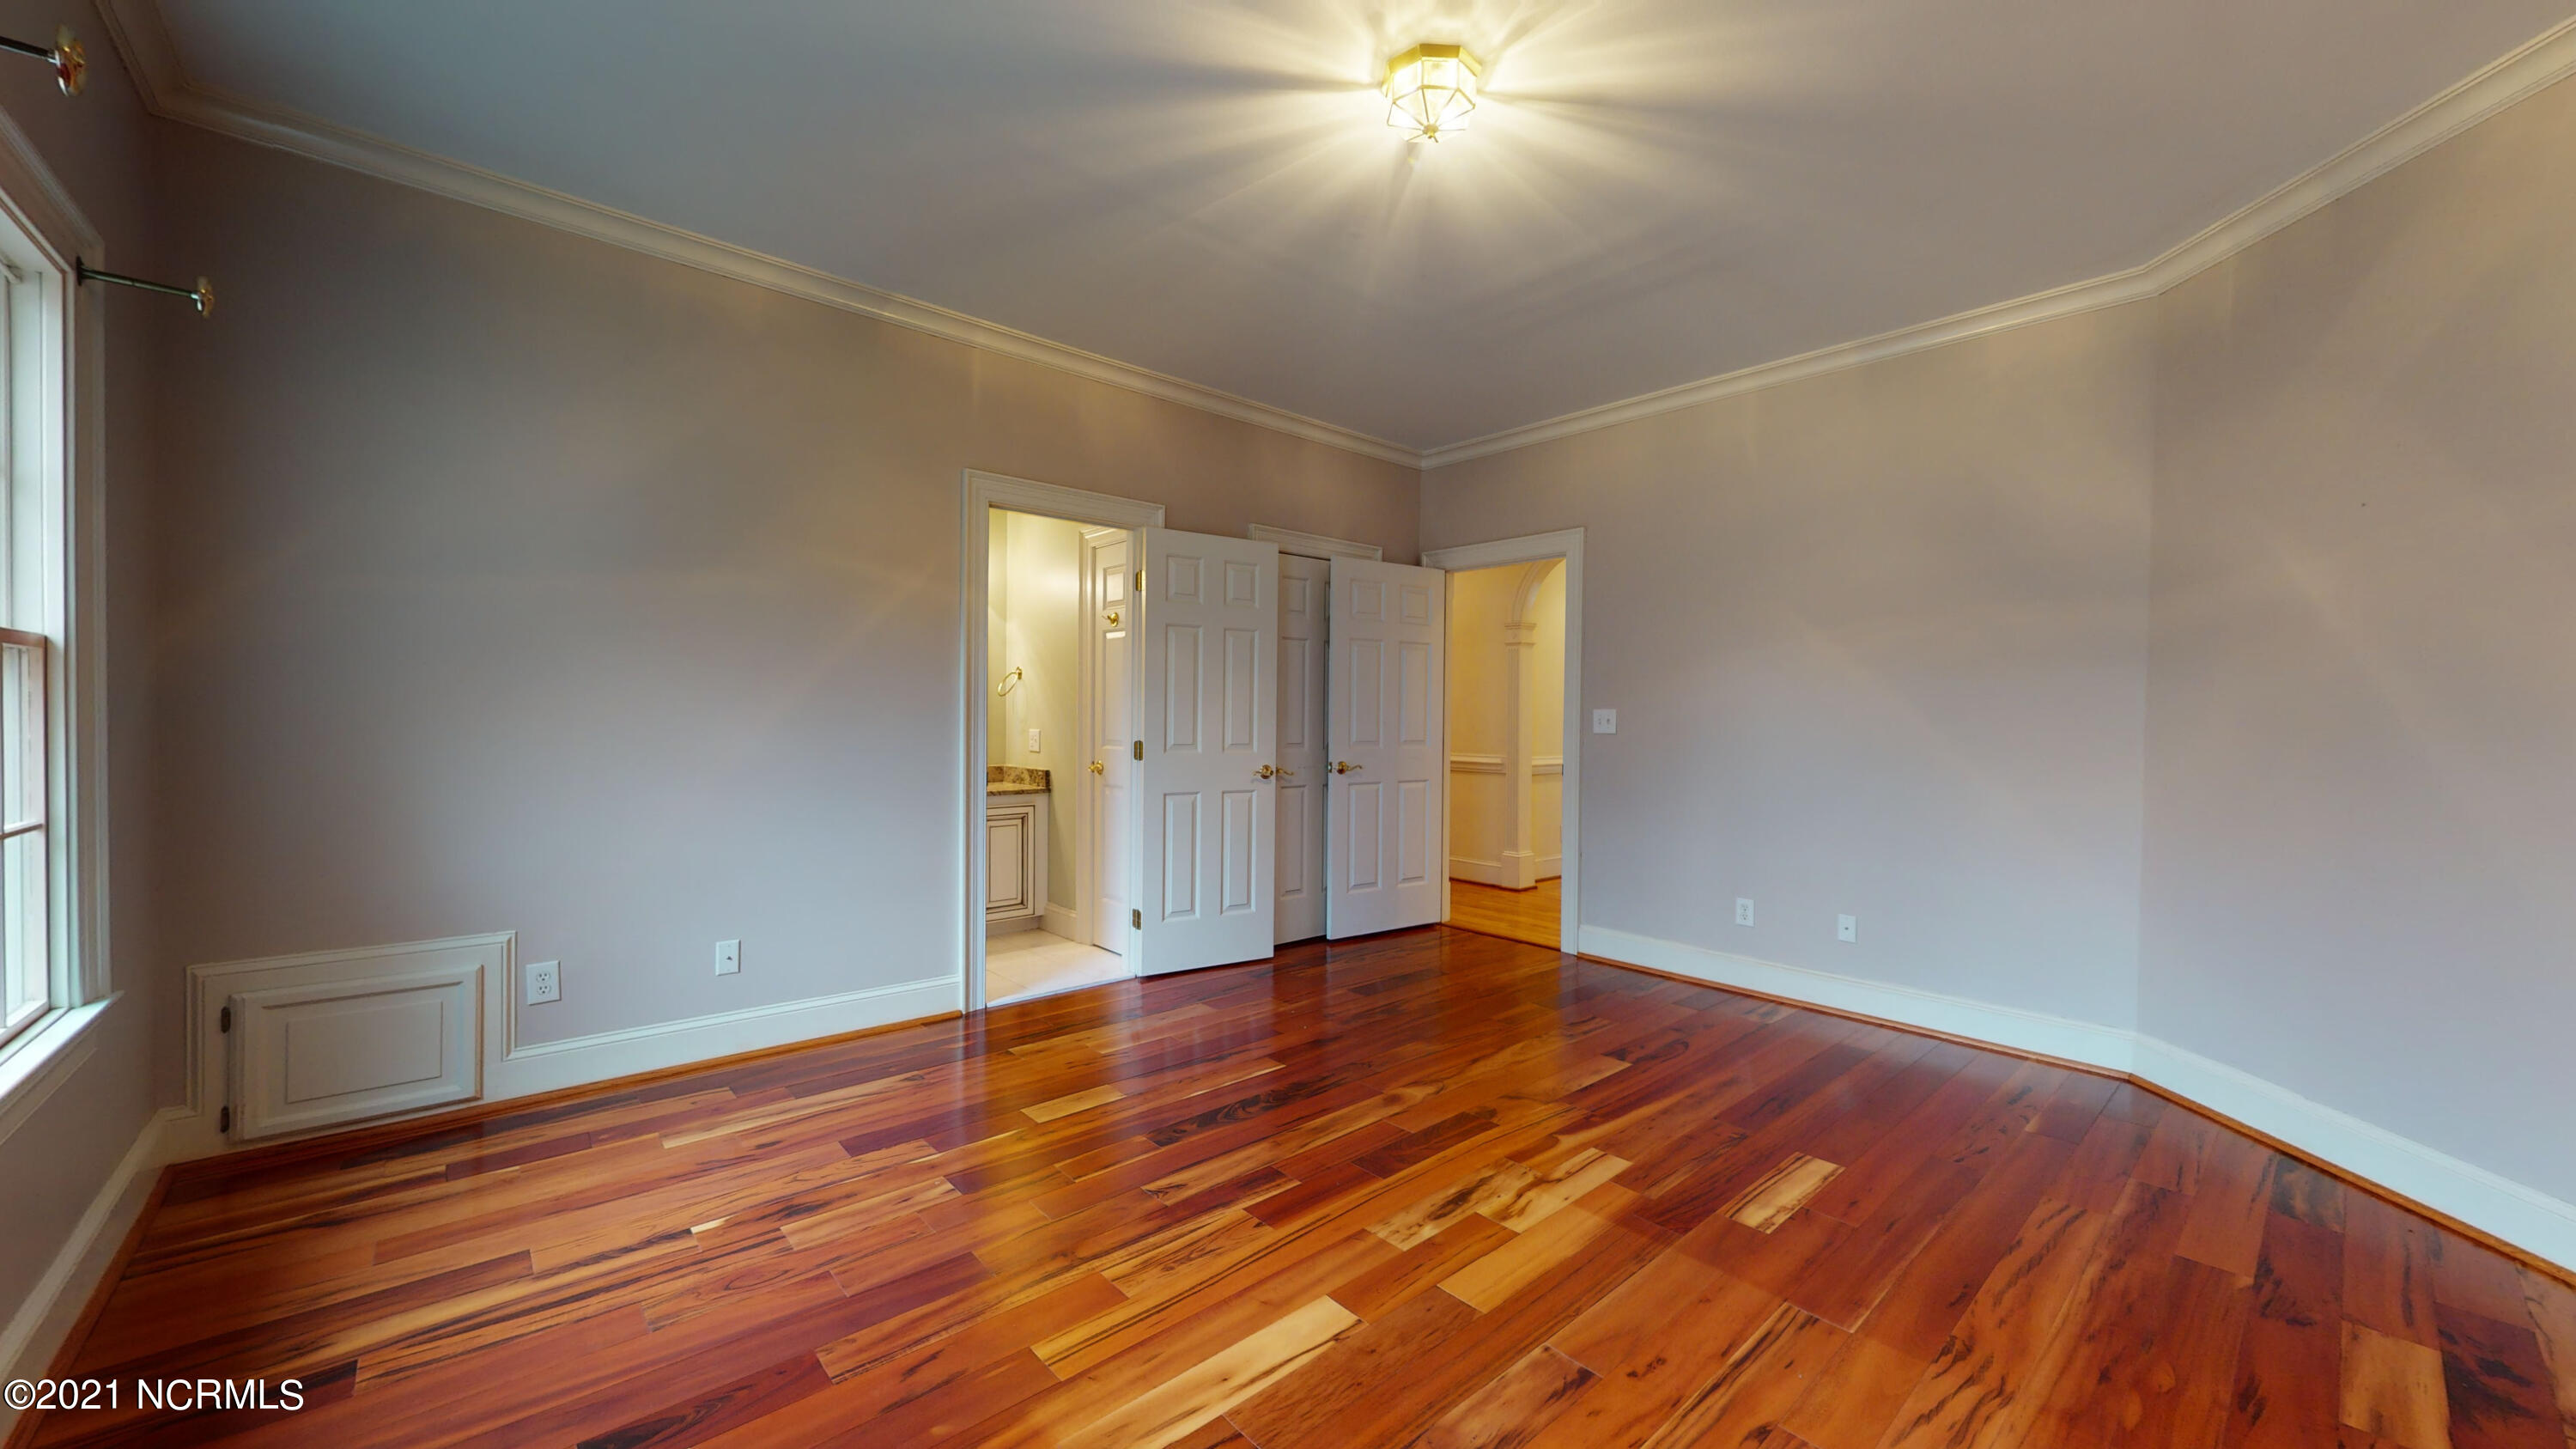 753 Pinepoint Road, Greenville, North Carolina 27834, 4 Bedrooms Bedrooms, 11 Rooms Rooms,3 BathroomsBathrooms,Single family residence,For sale,Pinepoint,100260914